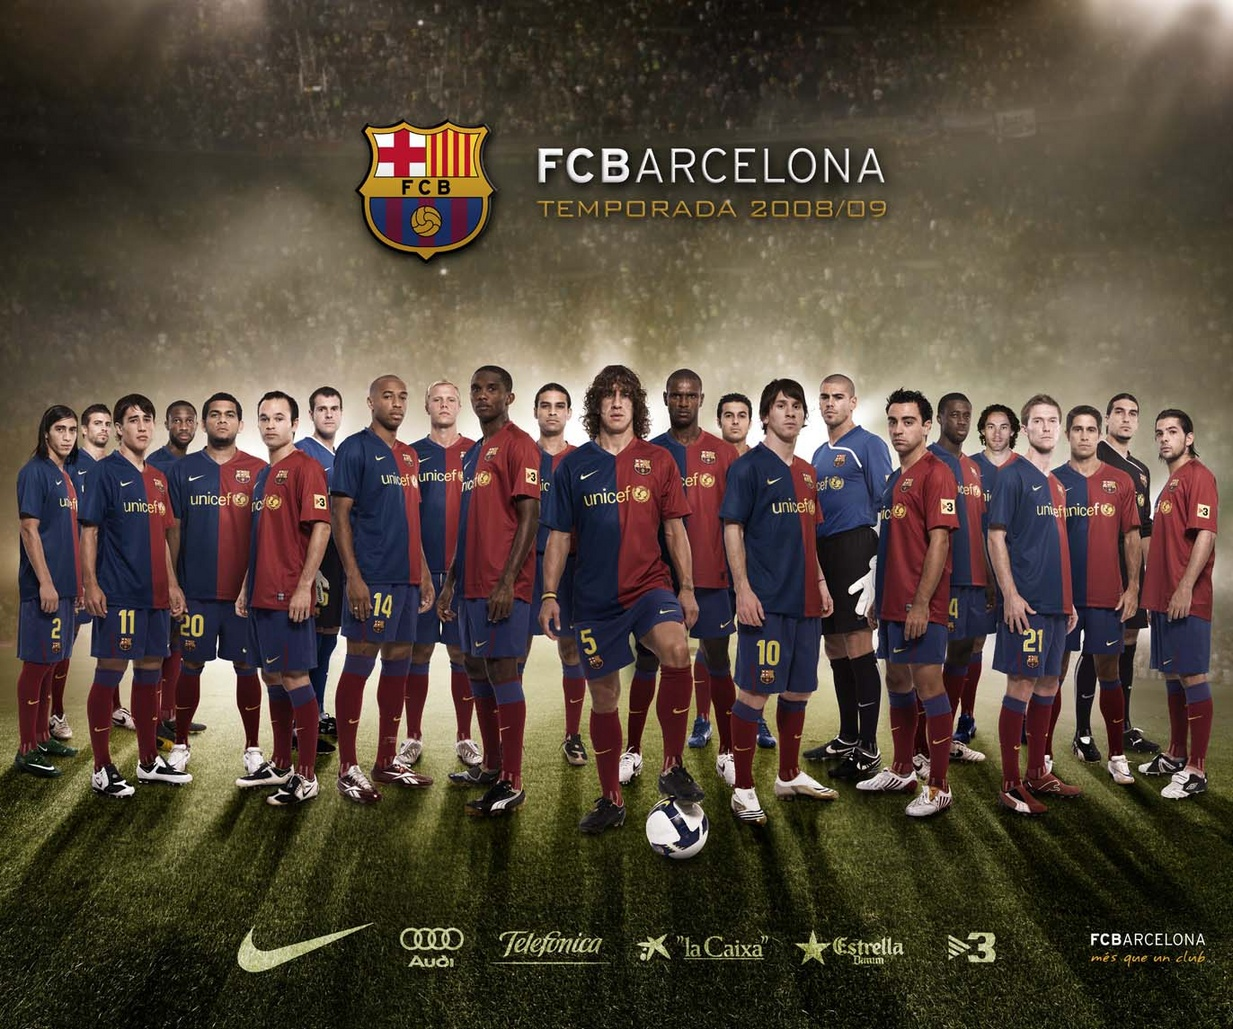 football soccer wallpaper barcelona team squad 01 800x600jpg 1233x1029